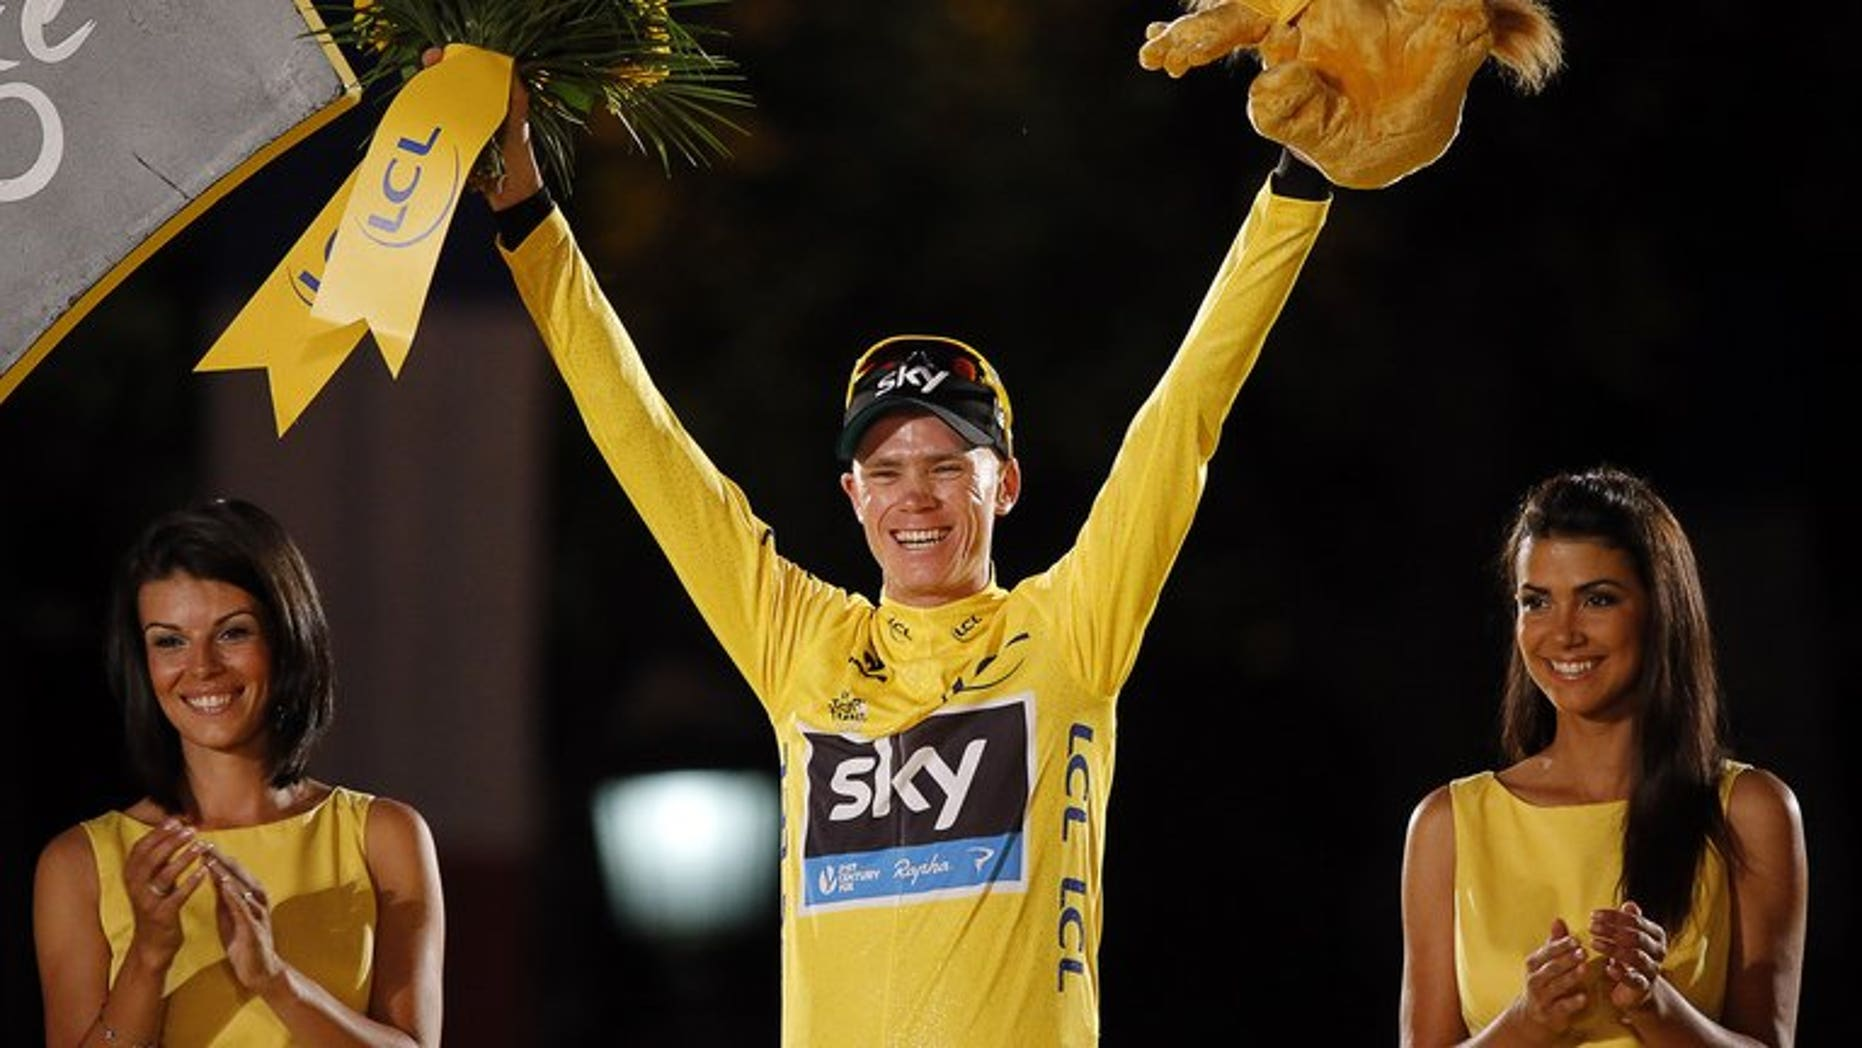 Tour de France 2013 winner Britain's Chris Froome poses on the podium in Paris on the Champs-Elysee avenue, at the end of the 133.5 km twenty-first and last stage of the 100th edition of the Tour de France cycling race on July 21, 2013 between Versailles and Paris.